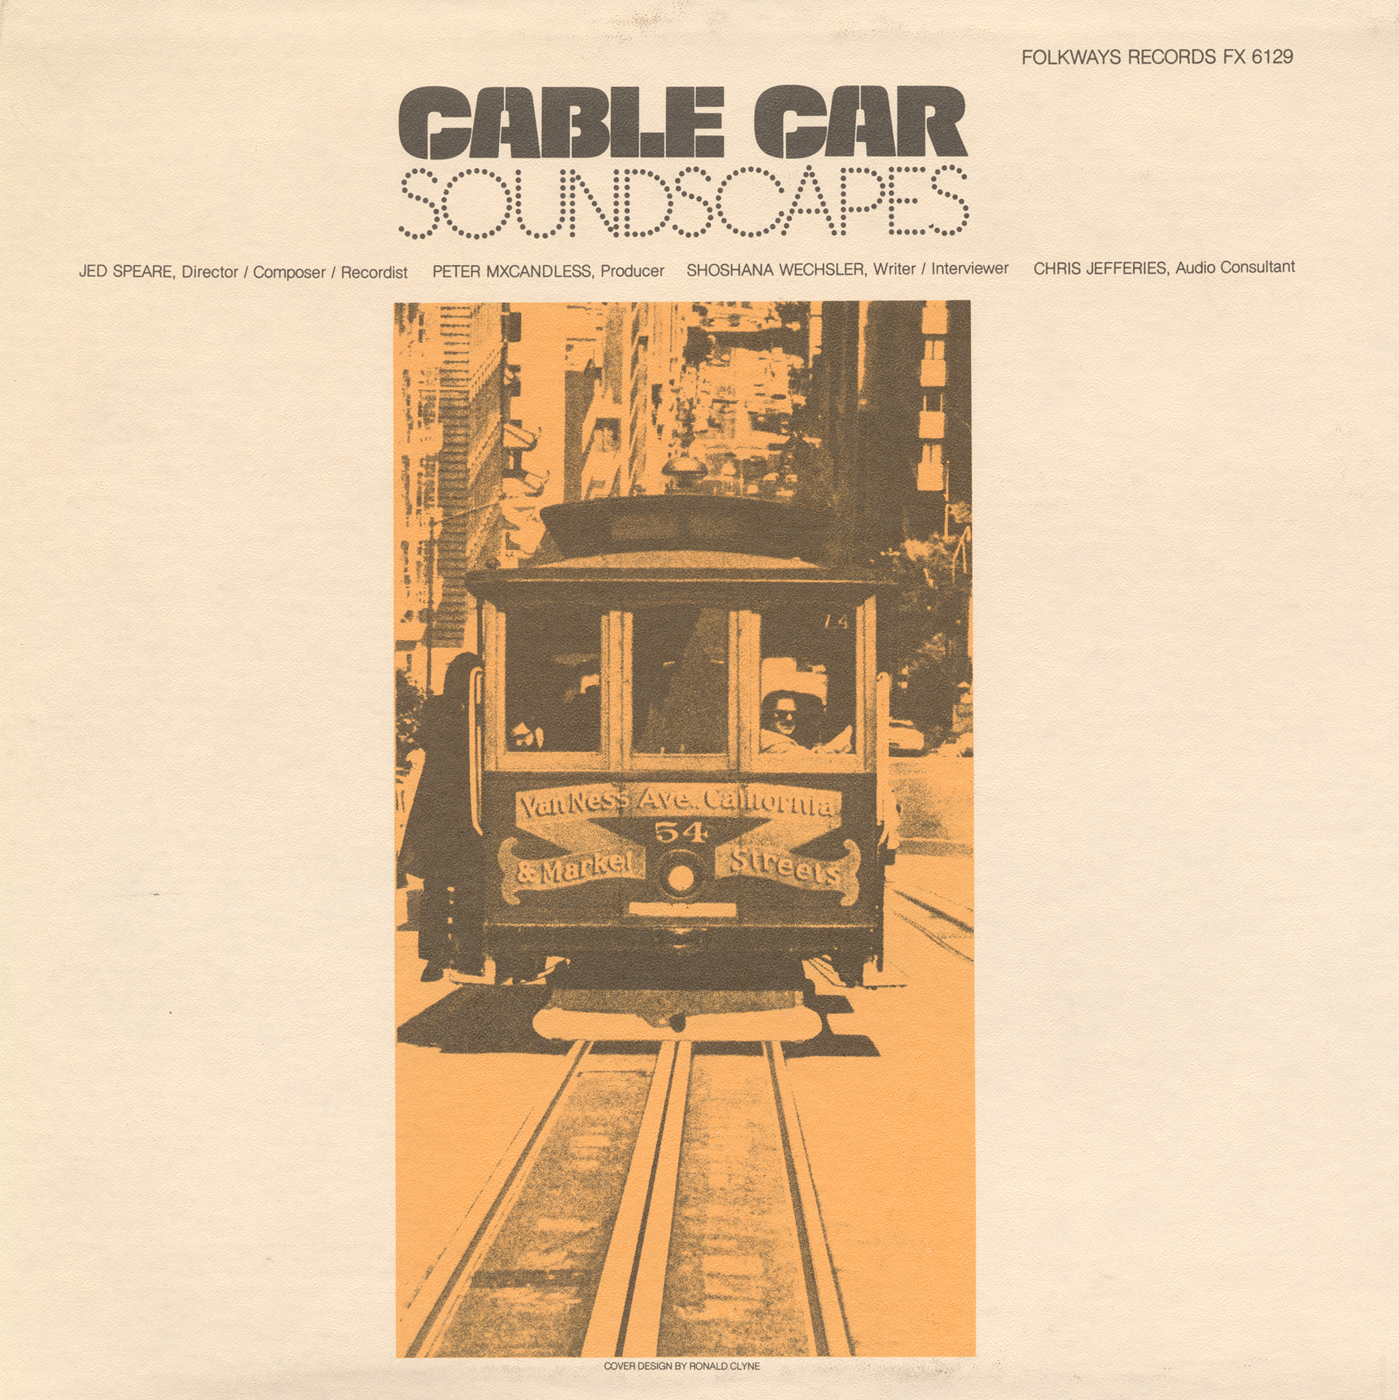 Cable Car Soundscapes | Smithsonian Folkways Recordings